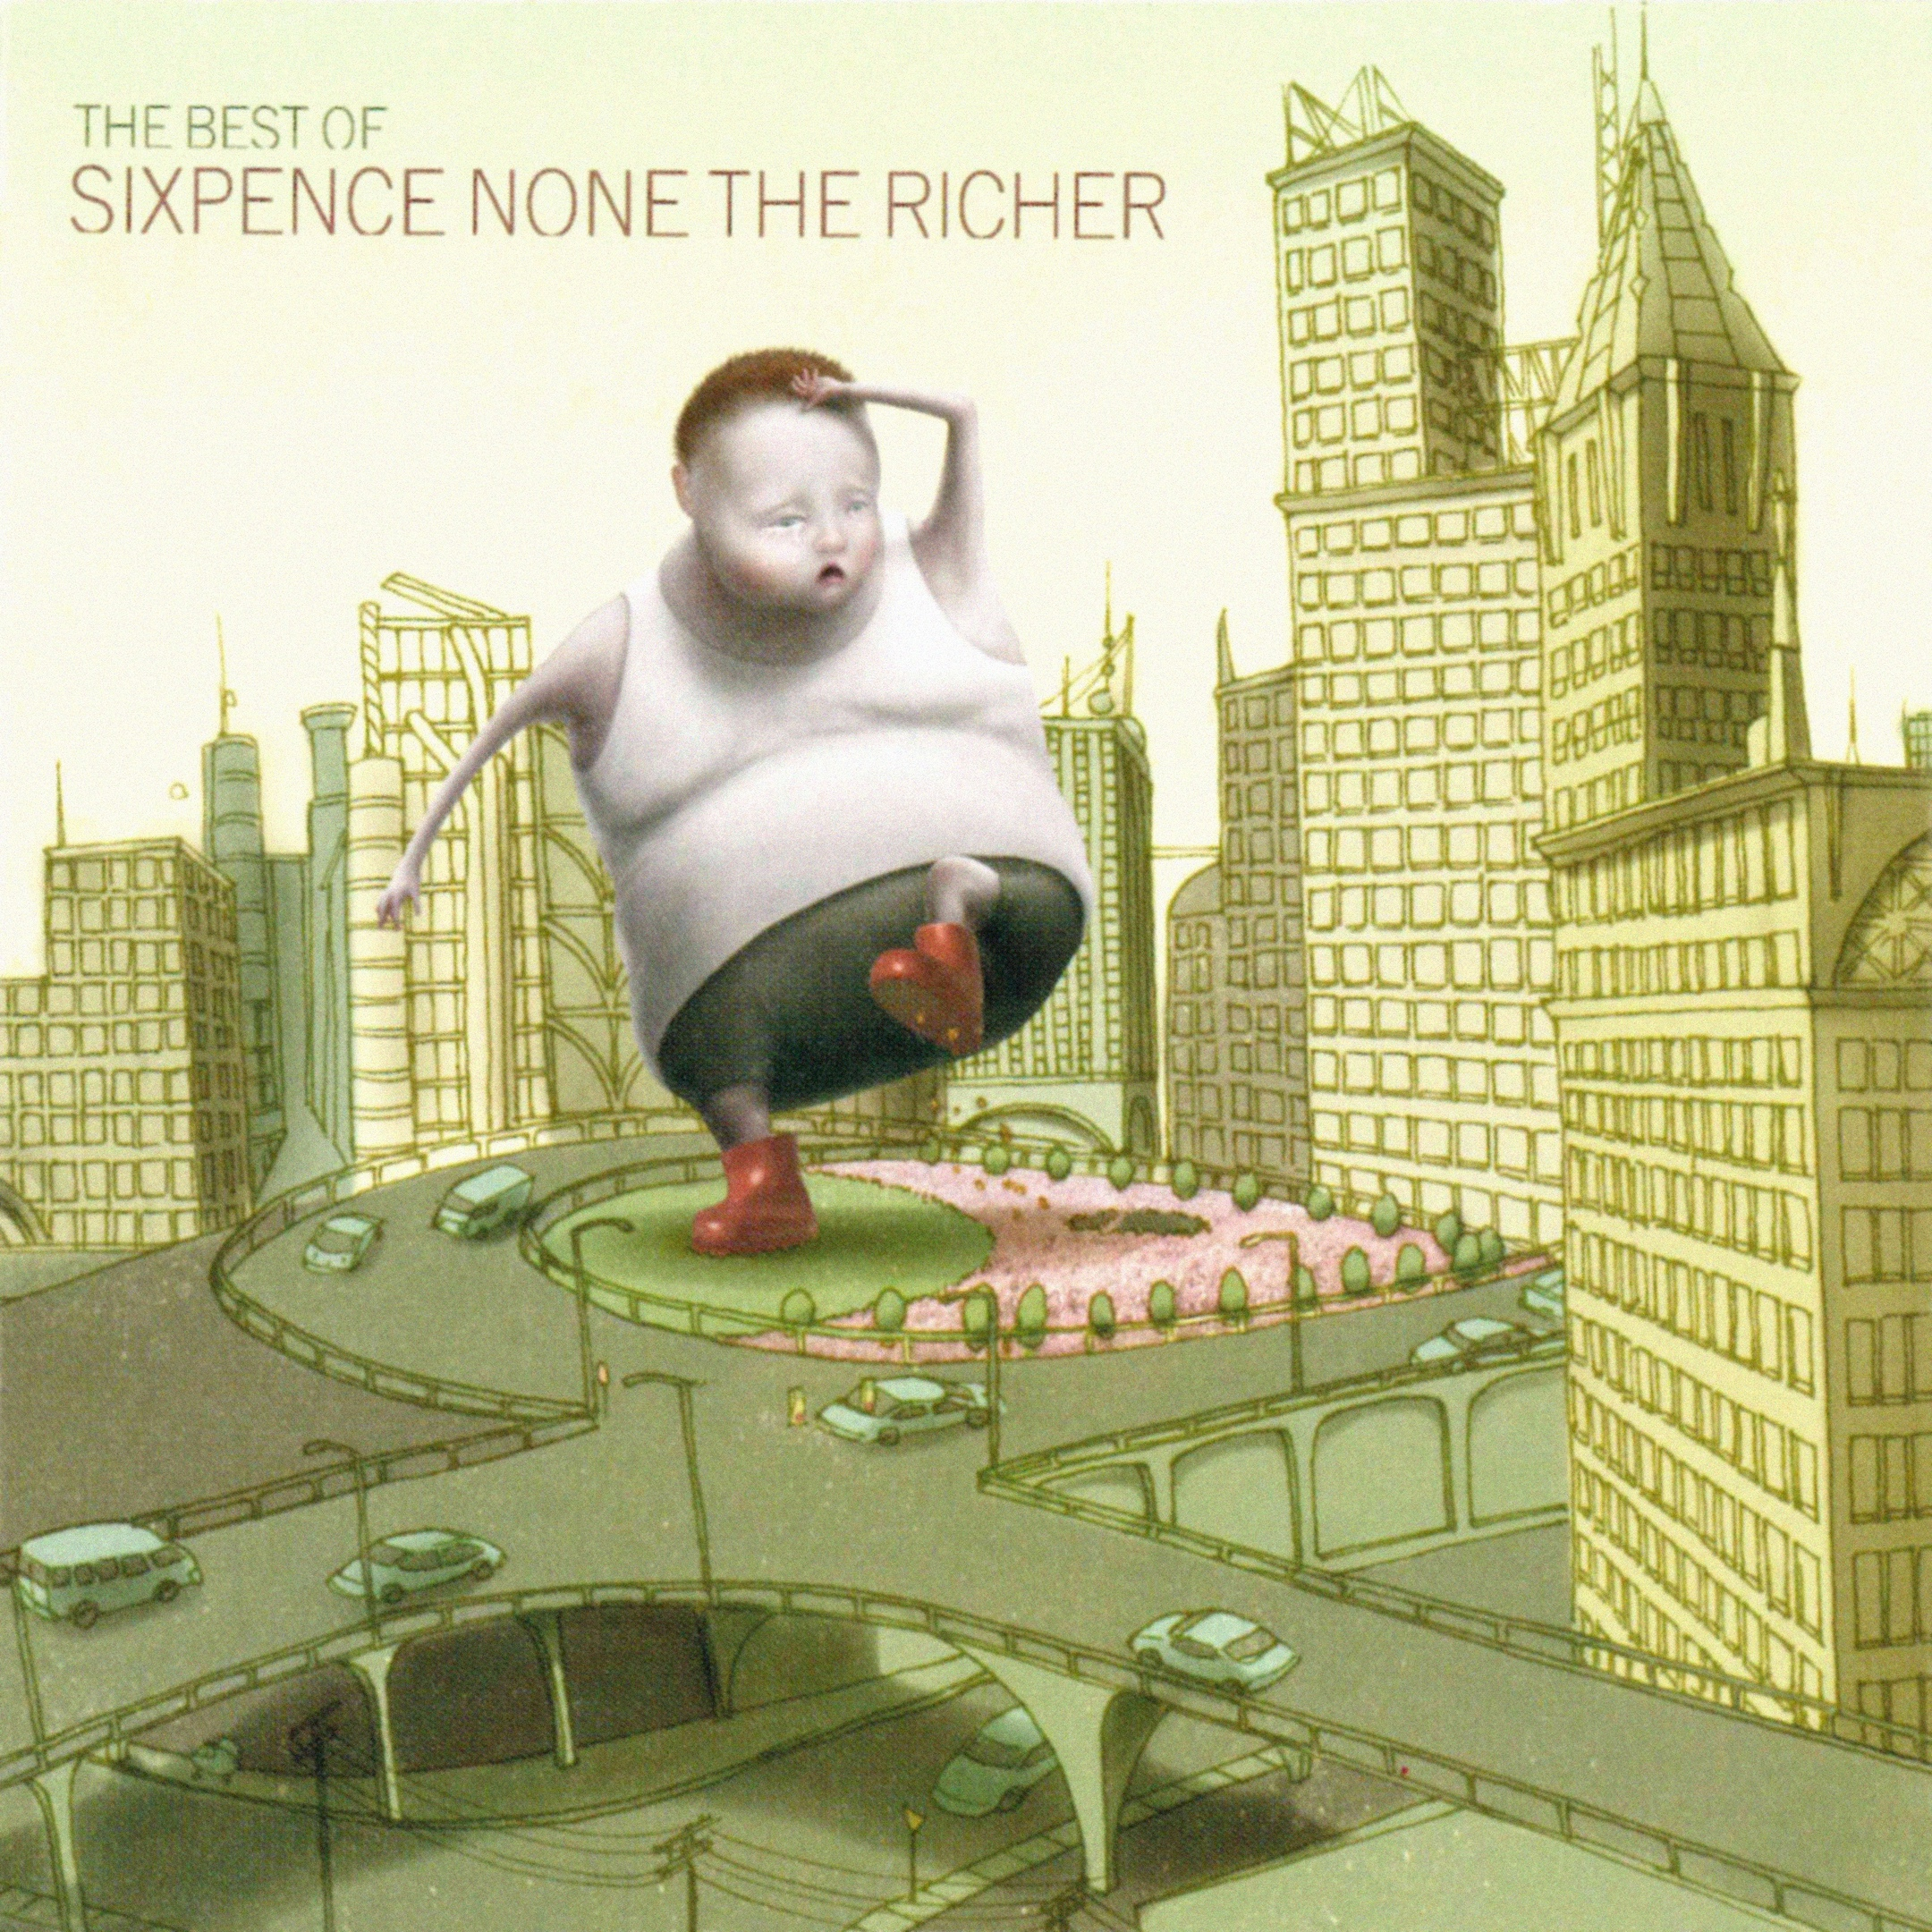 Sixpence None The Richer album The Best of Sixpence None the Richer